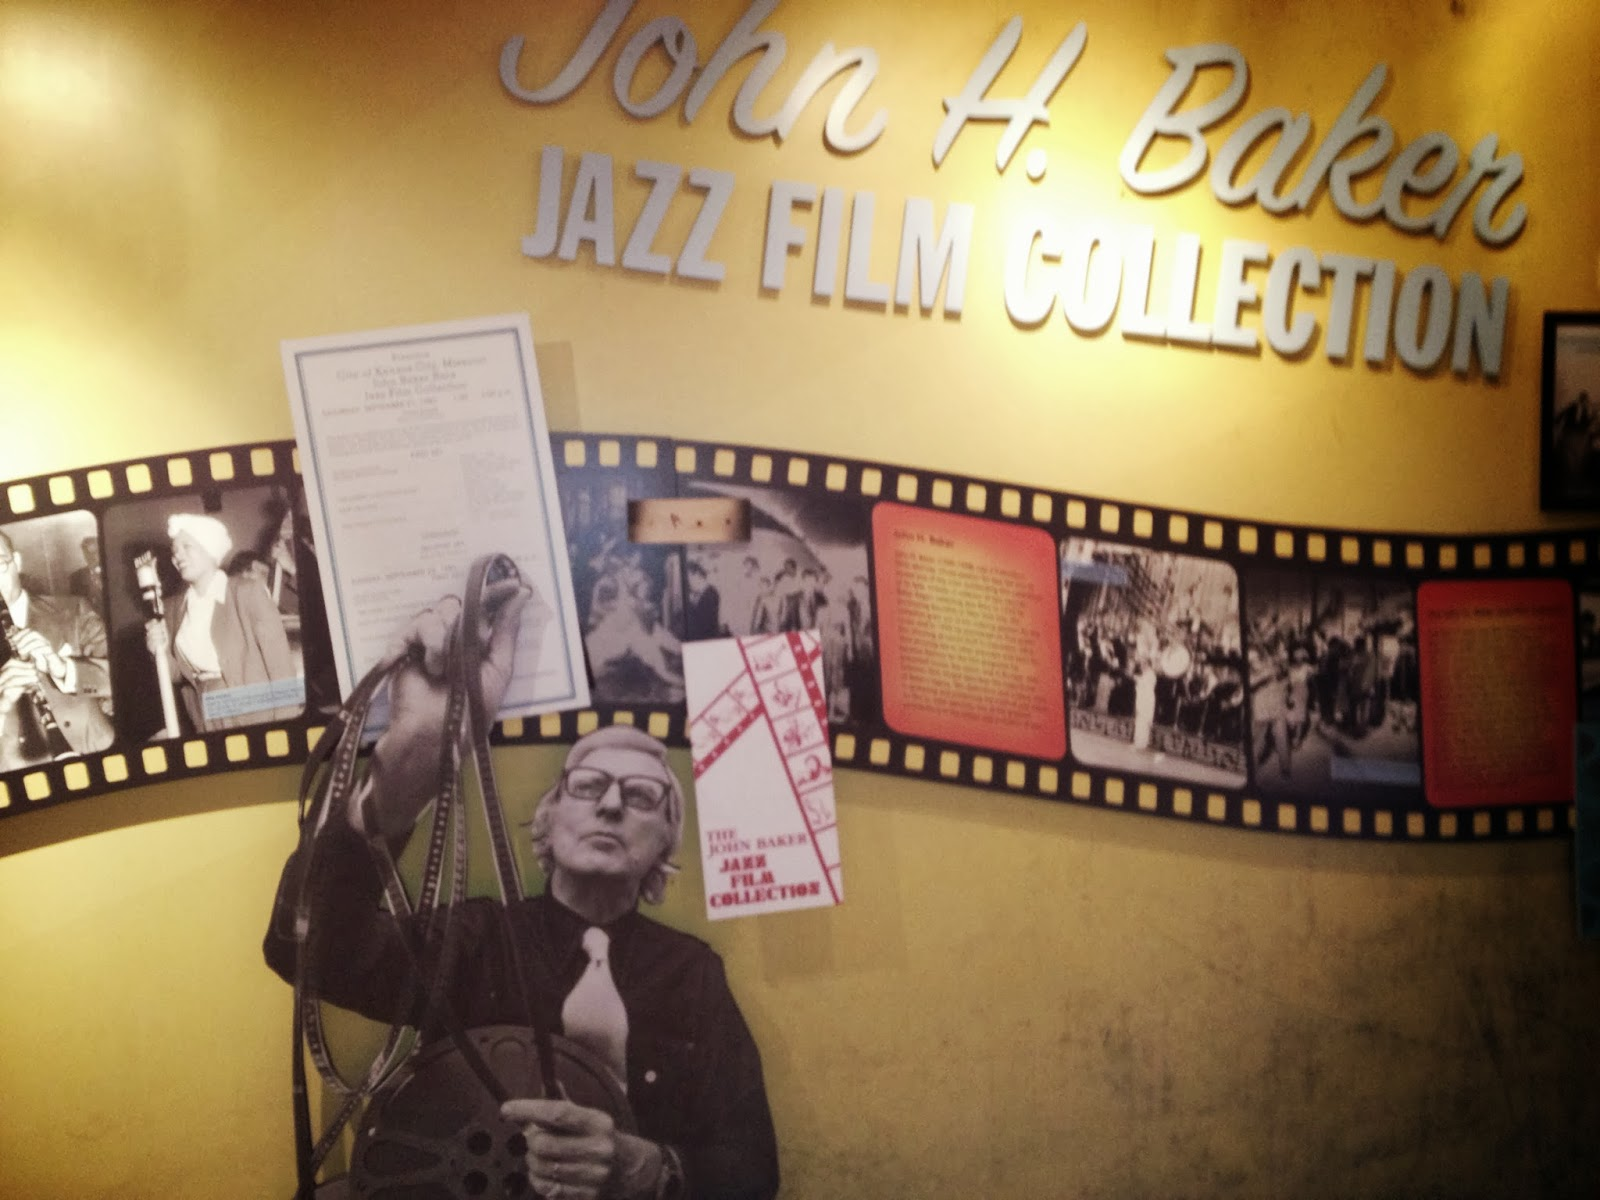 John H. Baker Jazz Film Collection at American Jazz Museum